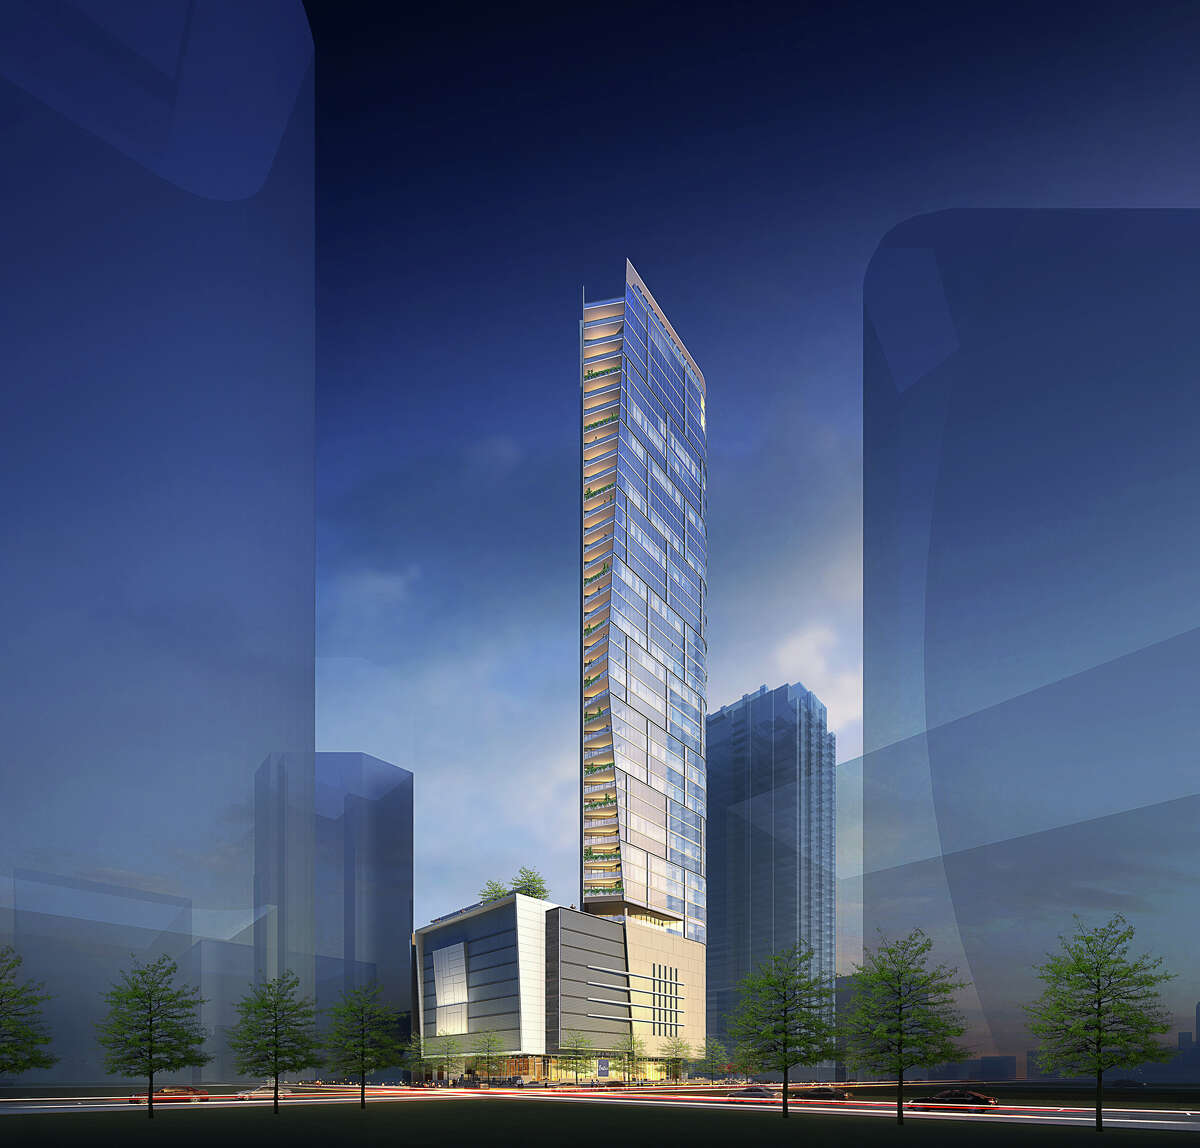 Hines is developing The Preston, a 46-story apartment tower downtown. The building will be caddy corner to a new 1 million-square-foot office tower also being developed by Hines.